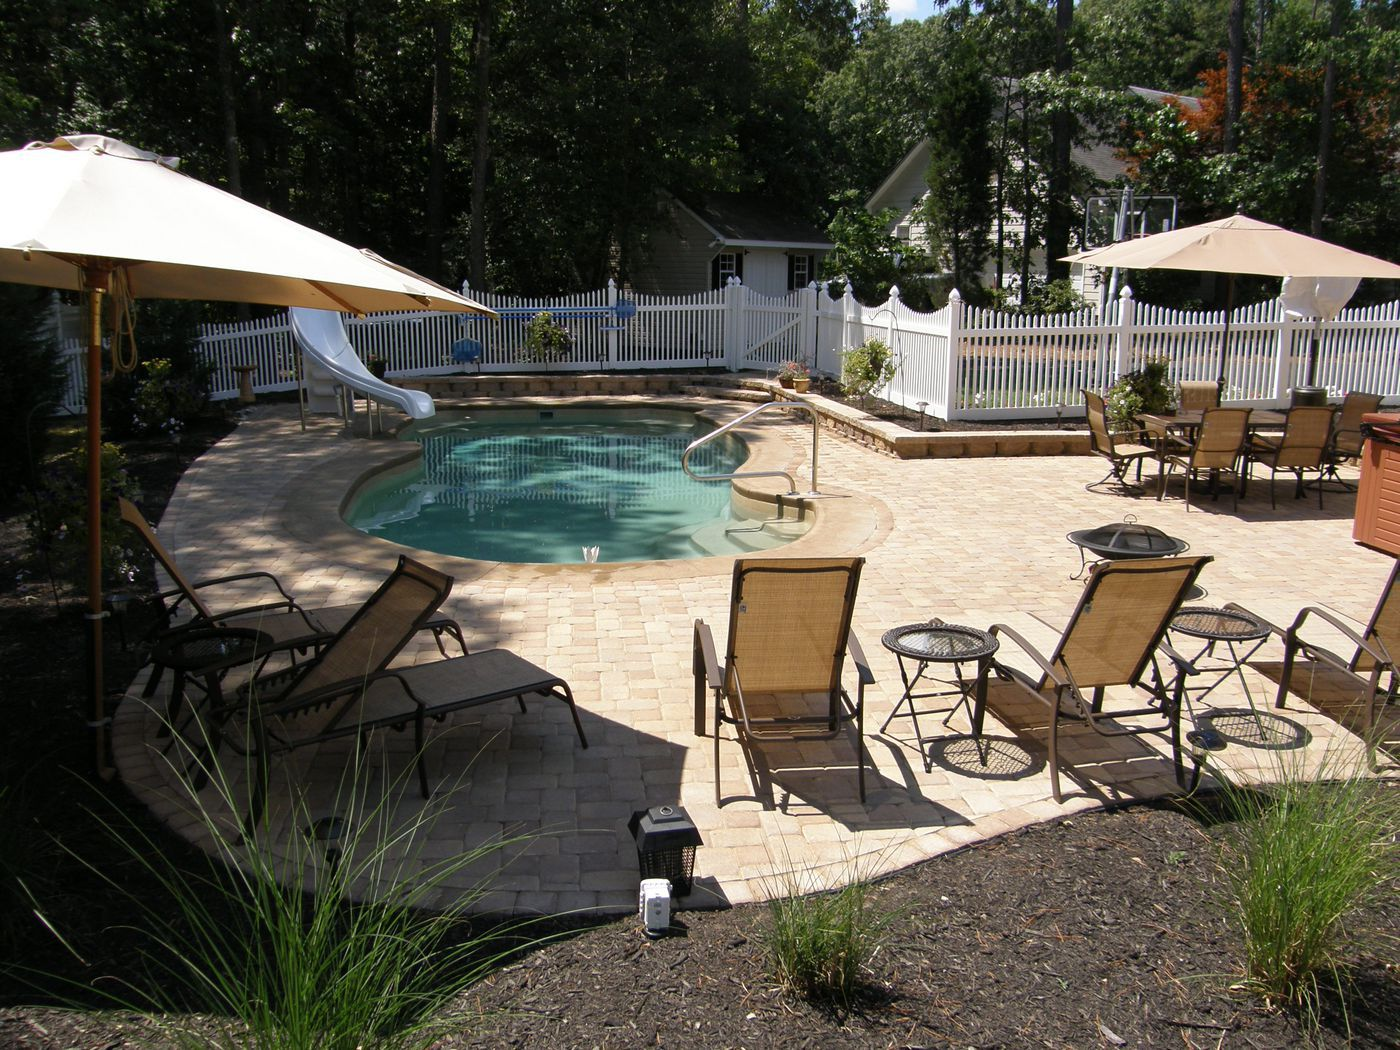 Pool Patio Materials: Stamped Concrete vs Pavers on Pool Patios Ideas id=75598